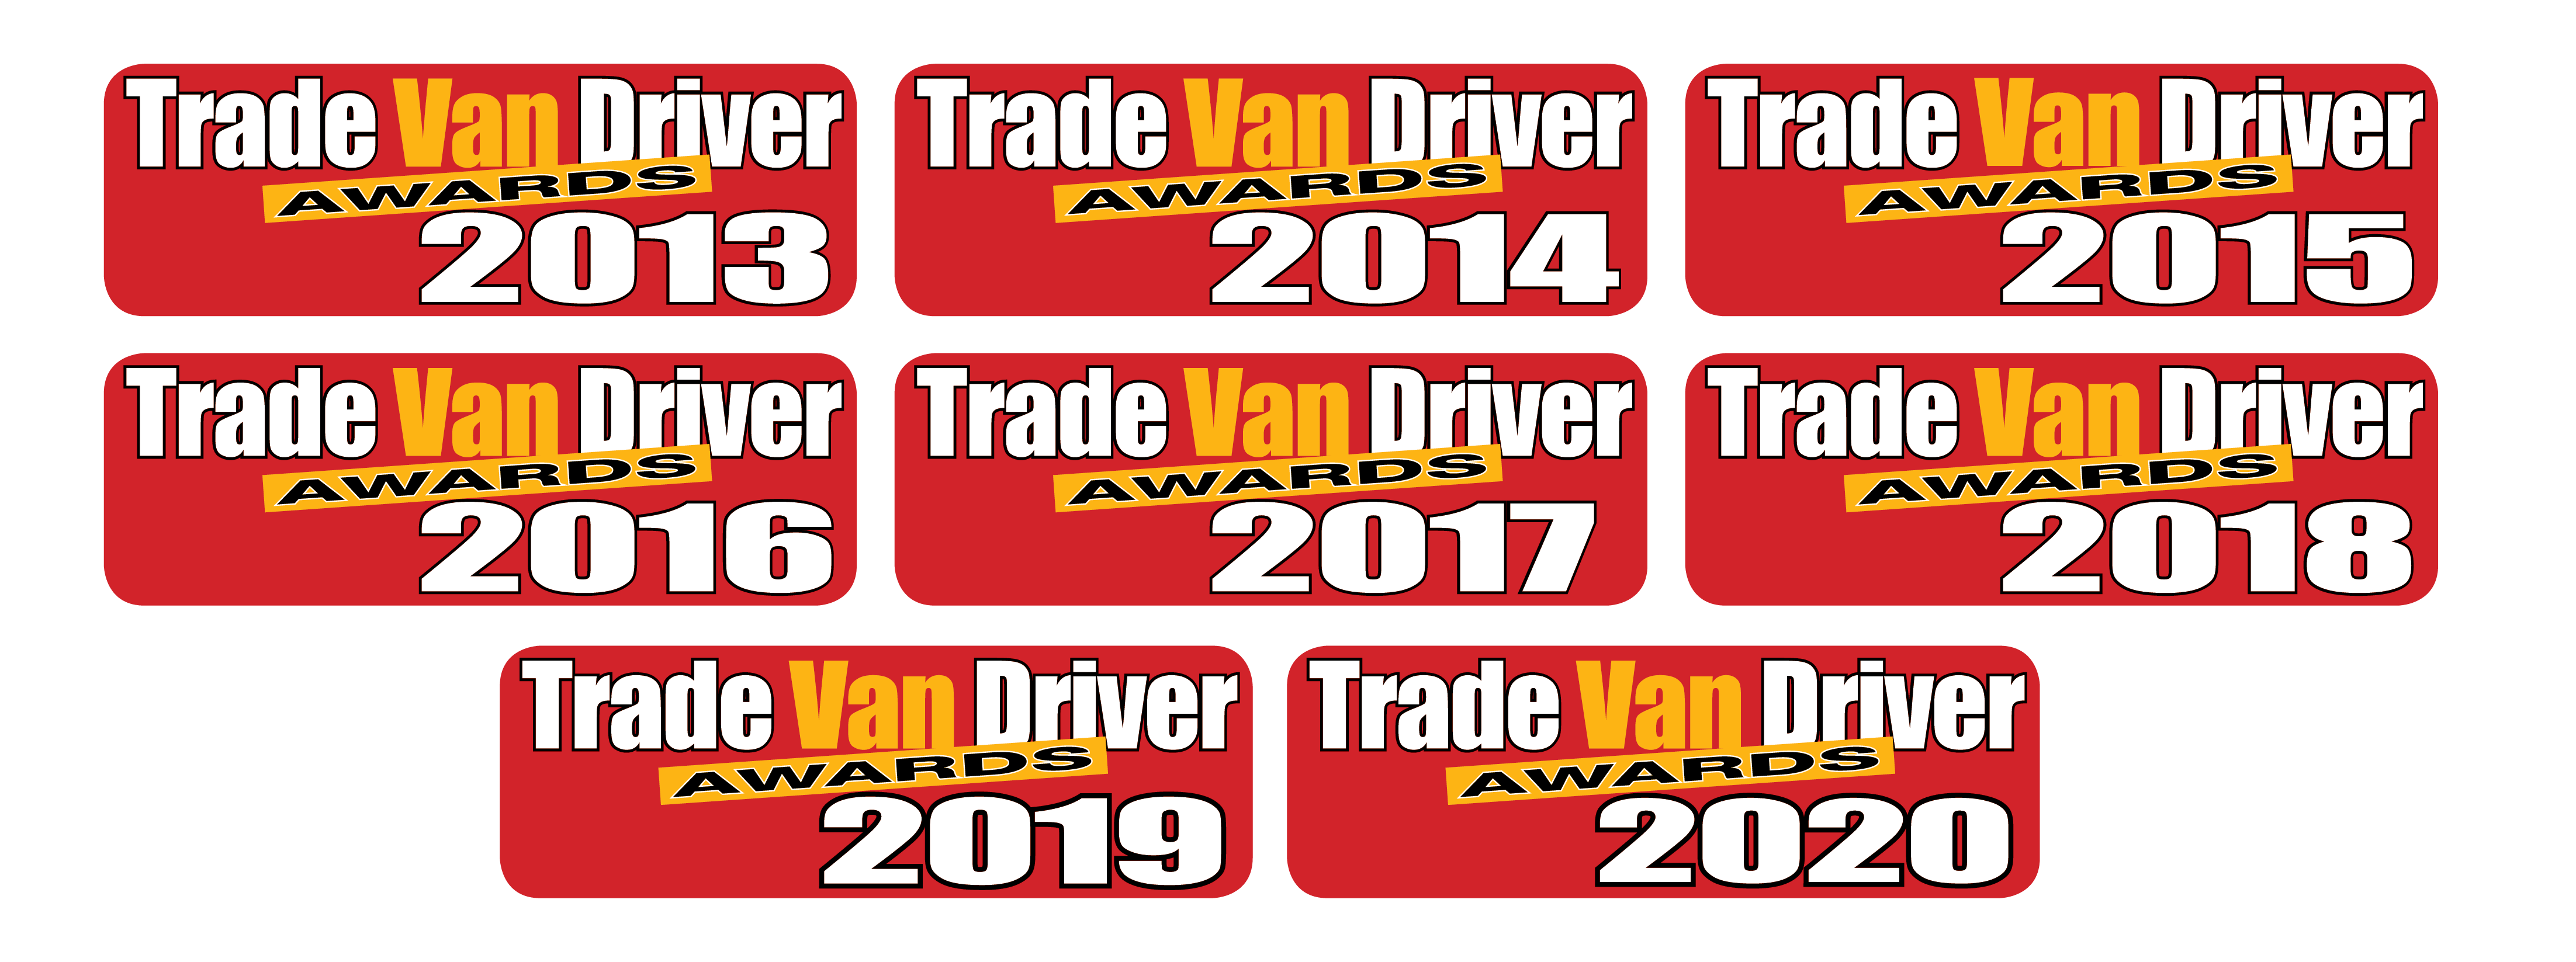 Trade Van Driver Awards